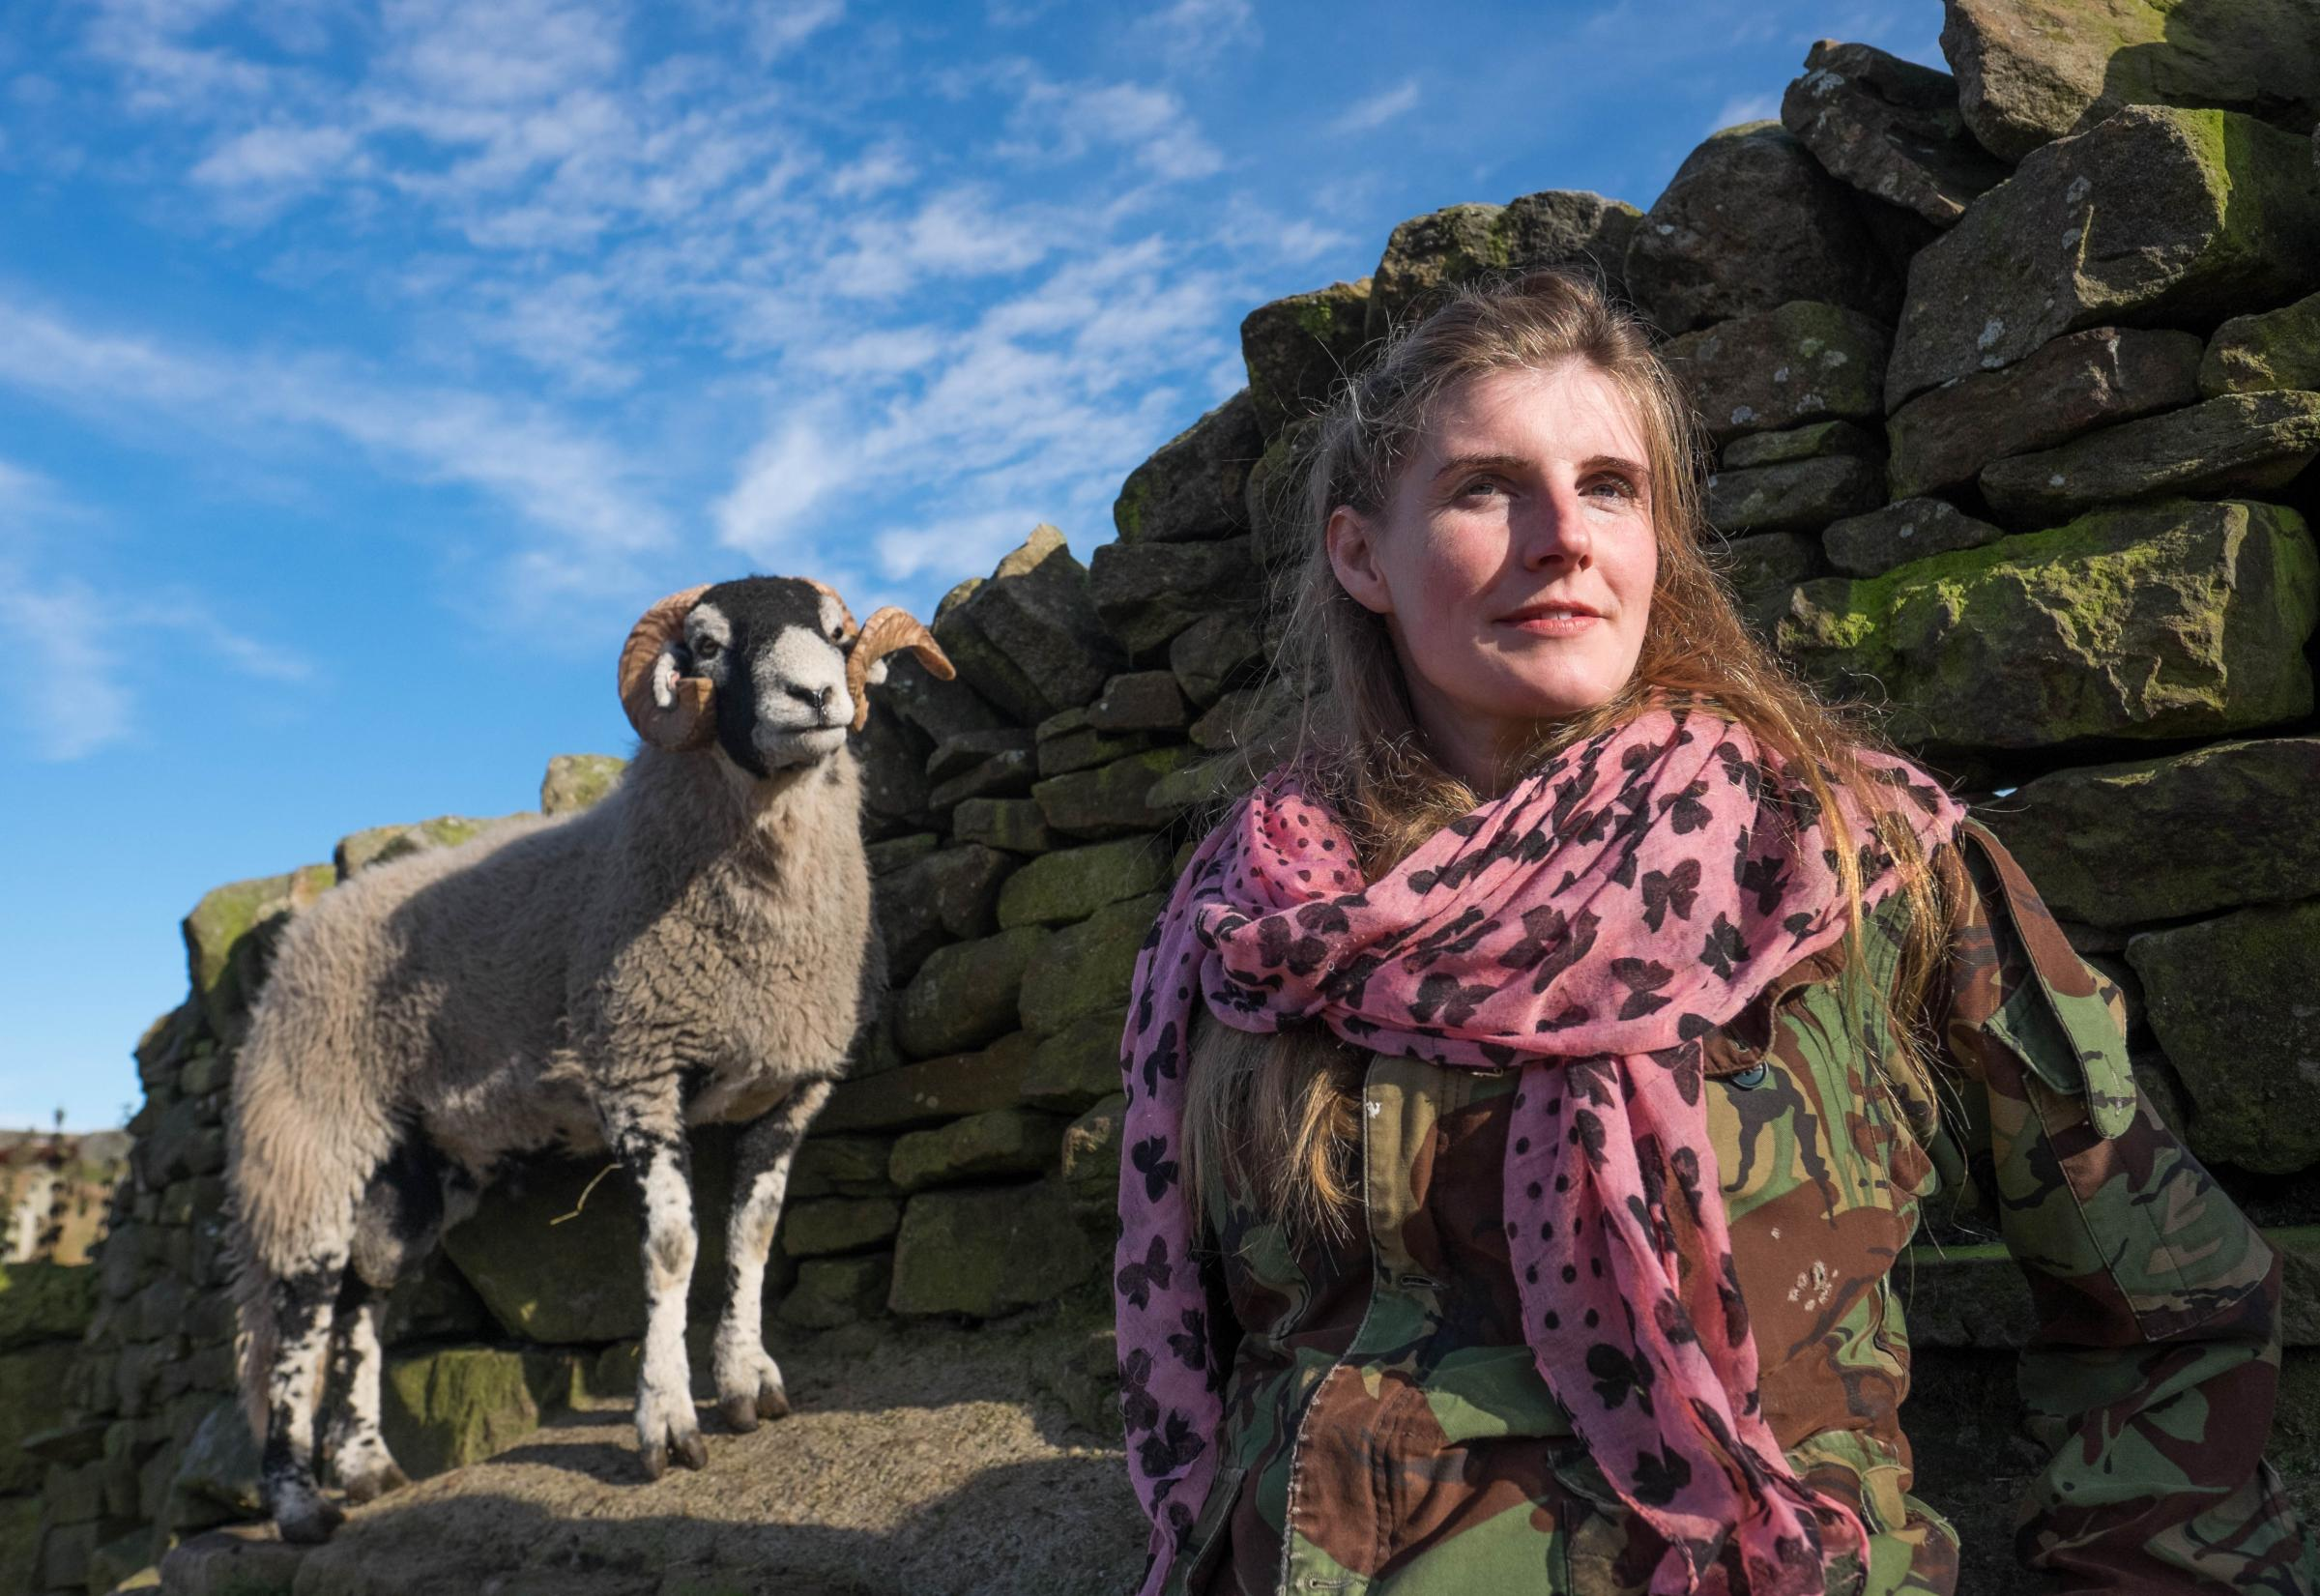 Yorkshire Shepherdess Amanda Owen will be in Darlington to sign copies of her new book. Picture: IAN FORSYTH